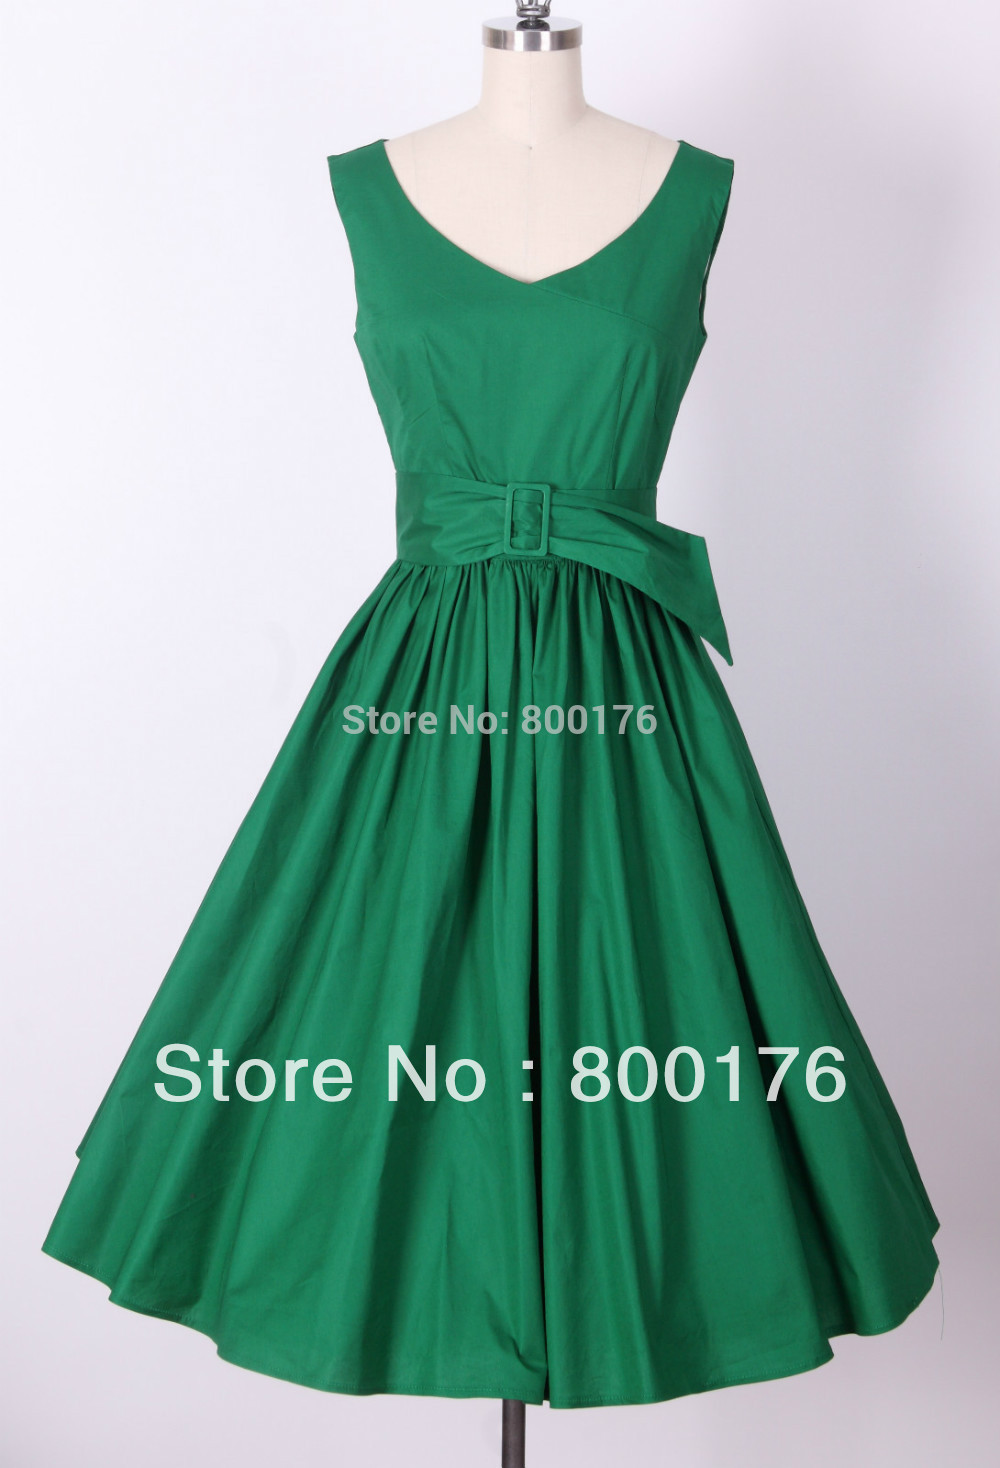 Cheap Vintage Style Clothing